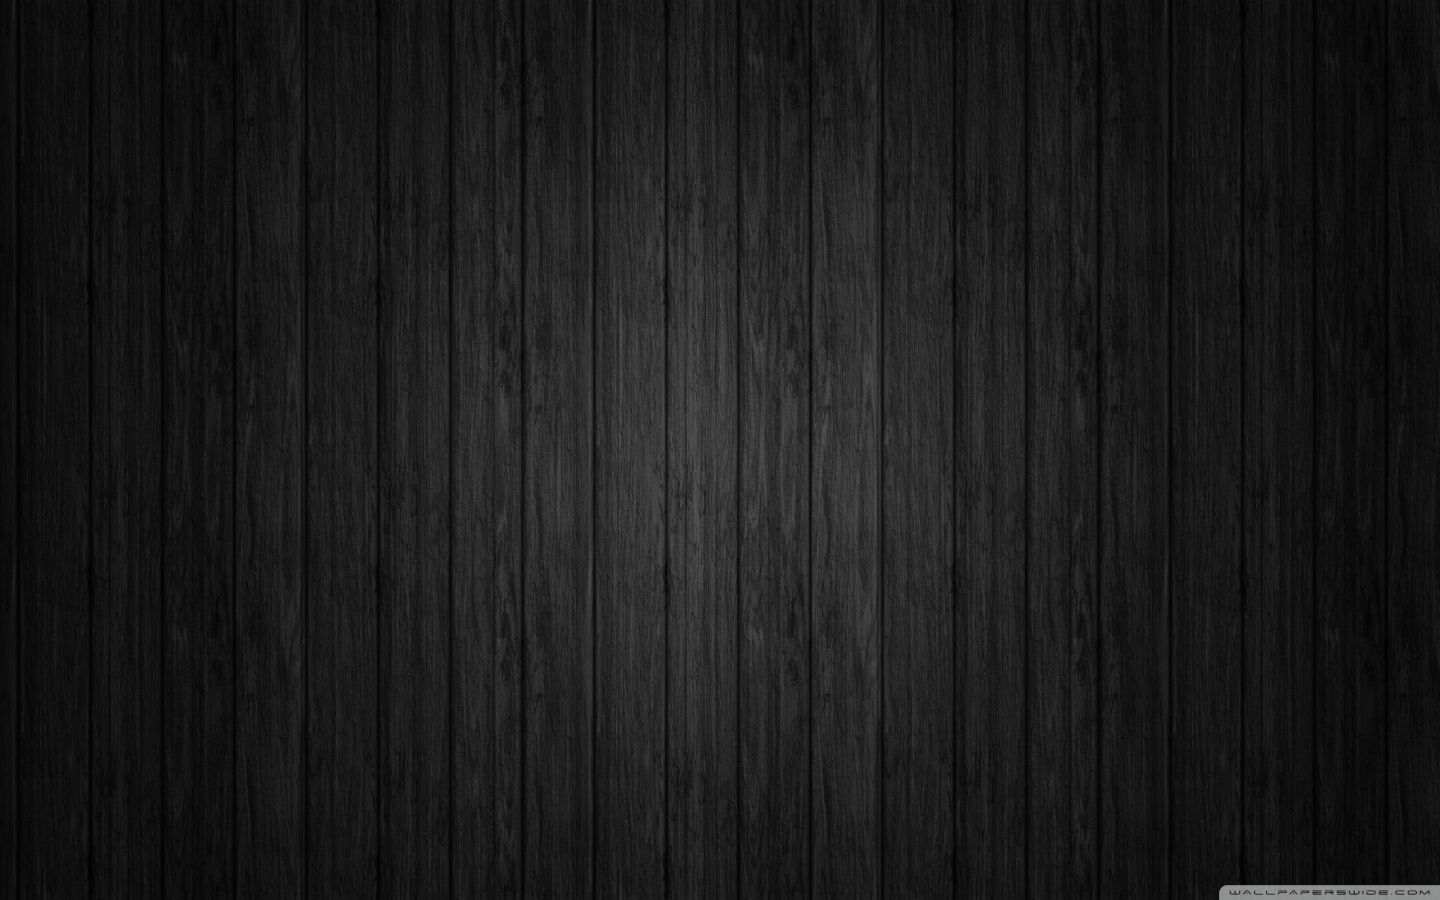 Ultra Black 4k Wallpapers 1080p Black Wood Background Background Hd Wallpaper Black Iphone Background